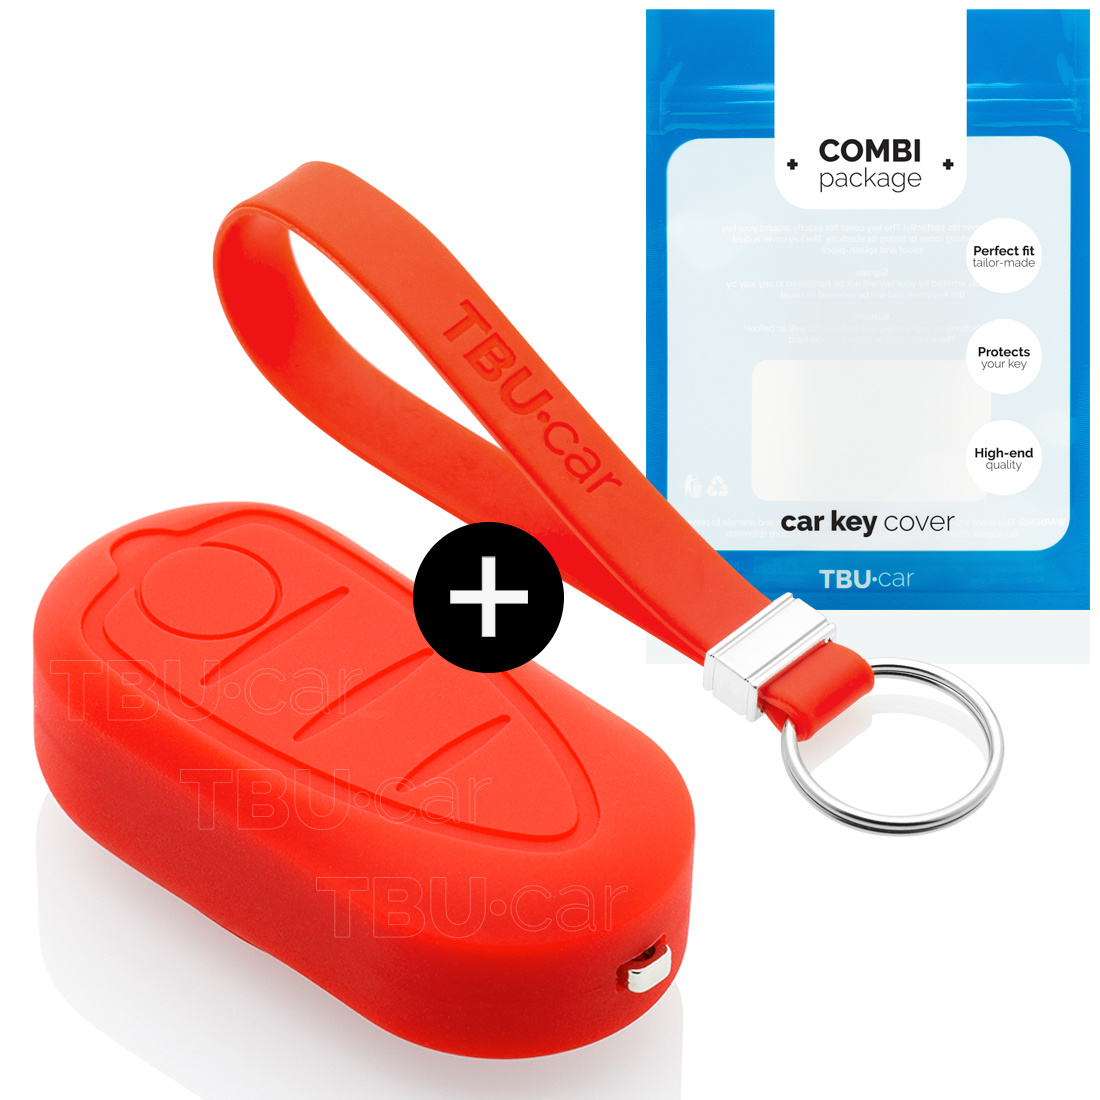 Alfa Romeo Car key cover - Silicone Protective Remote Key Shell - FOB Case Cover - Red